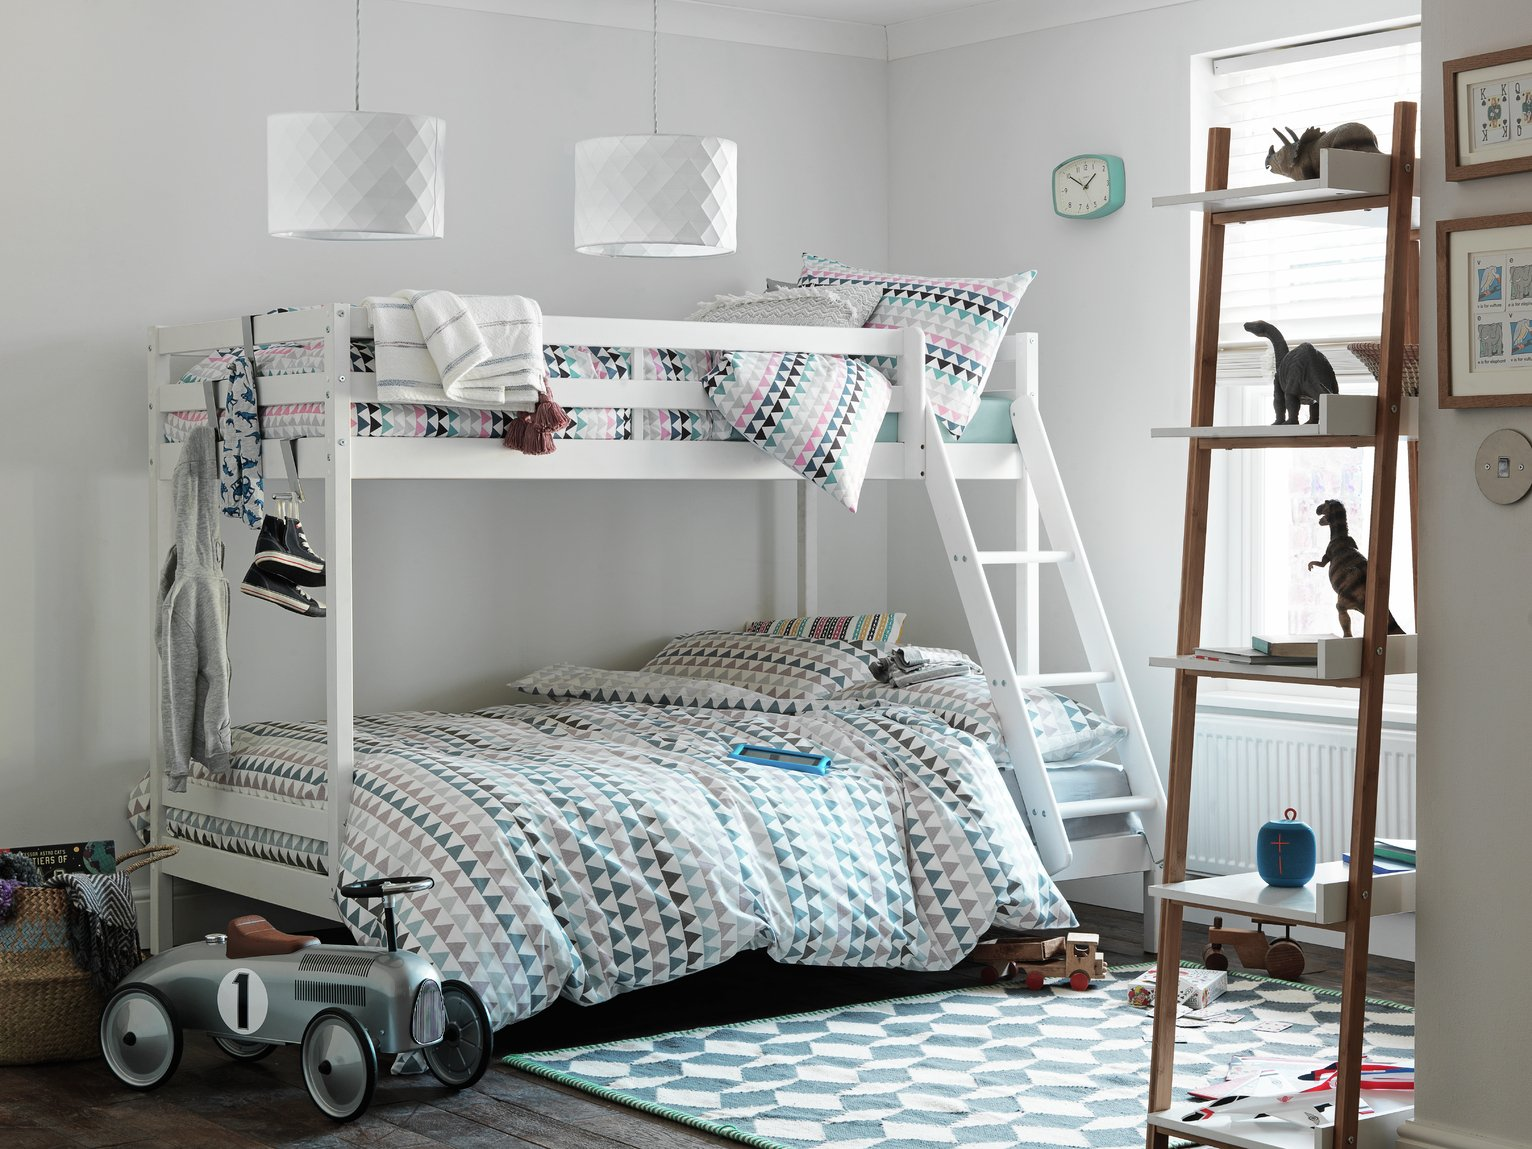 172 : bunk beds - amorenlinea.org